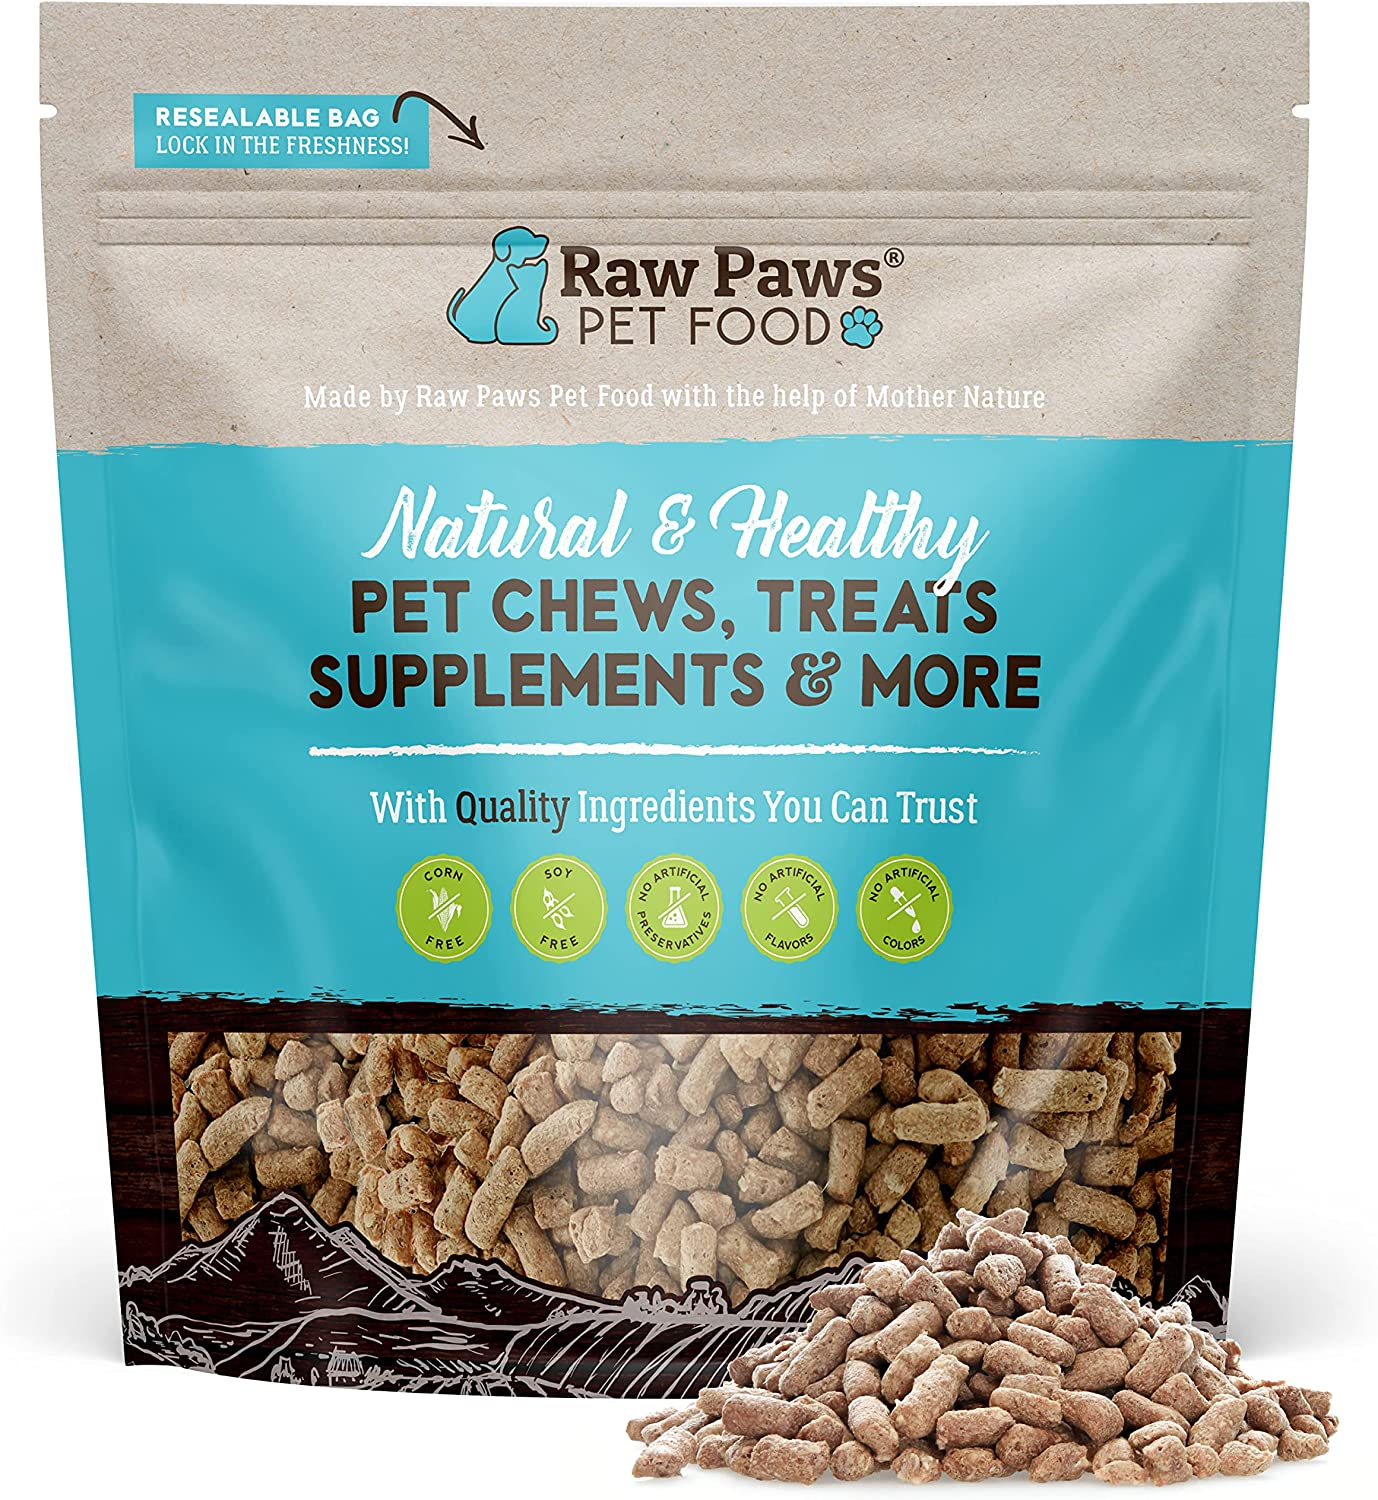 Raw Paws Premium Raw Freeze Dried Dog Food & Cat Food, 16 oz - Antibiotic-Free - Made in USA Only - Grain, Gluten and Wheat Free - All Natural Pet Food